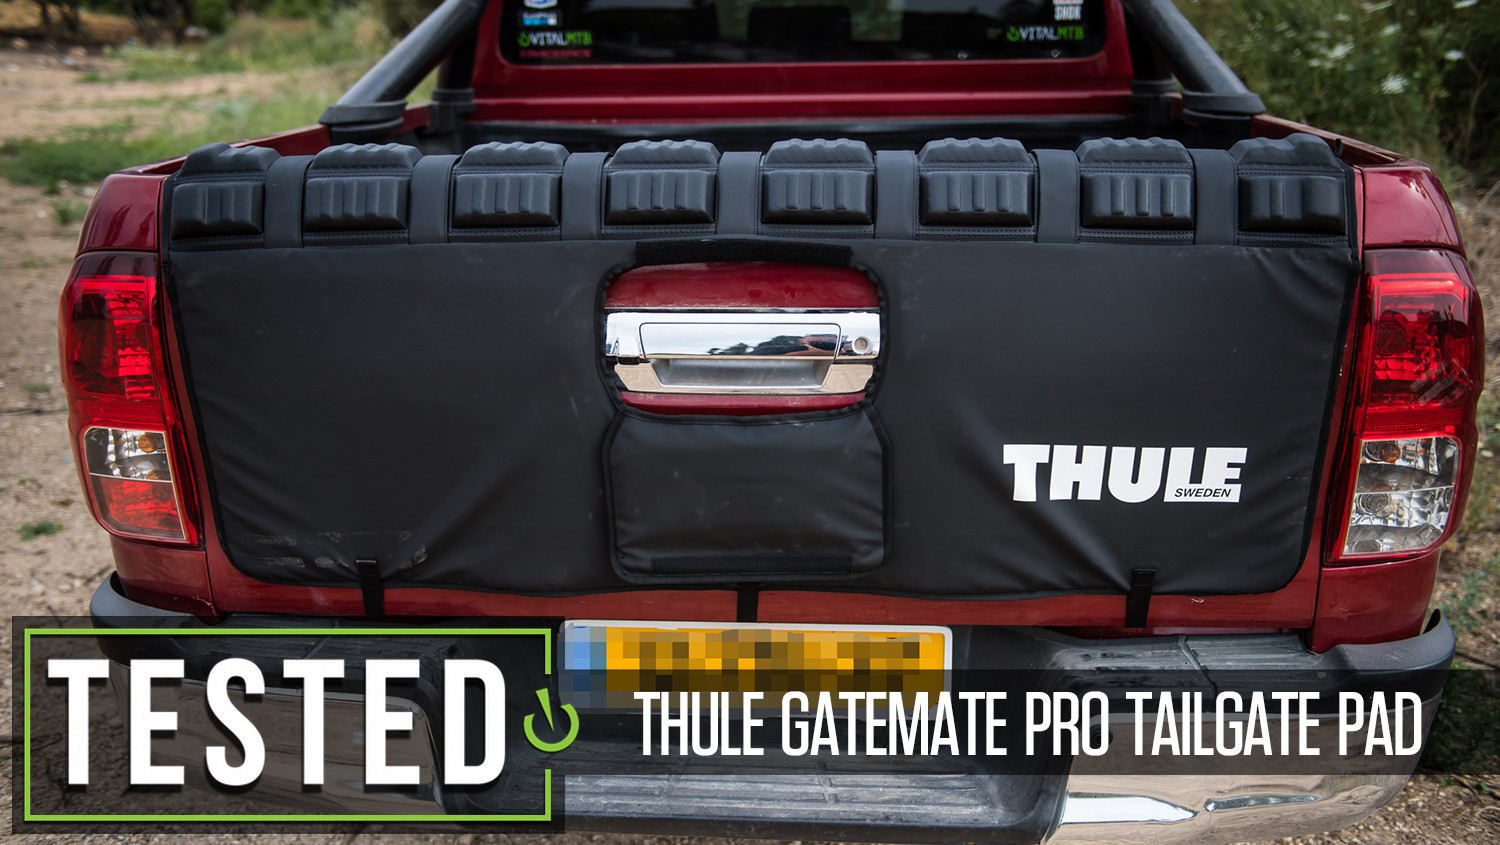 Tested: Thule GateMate Pro